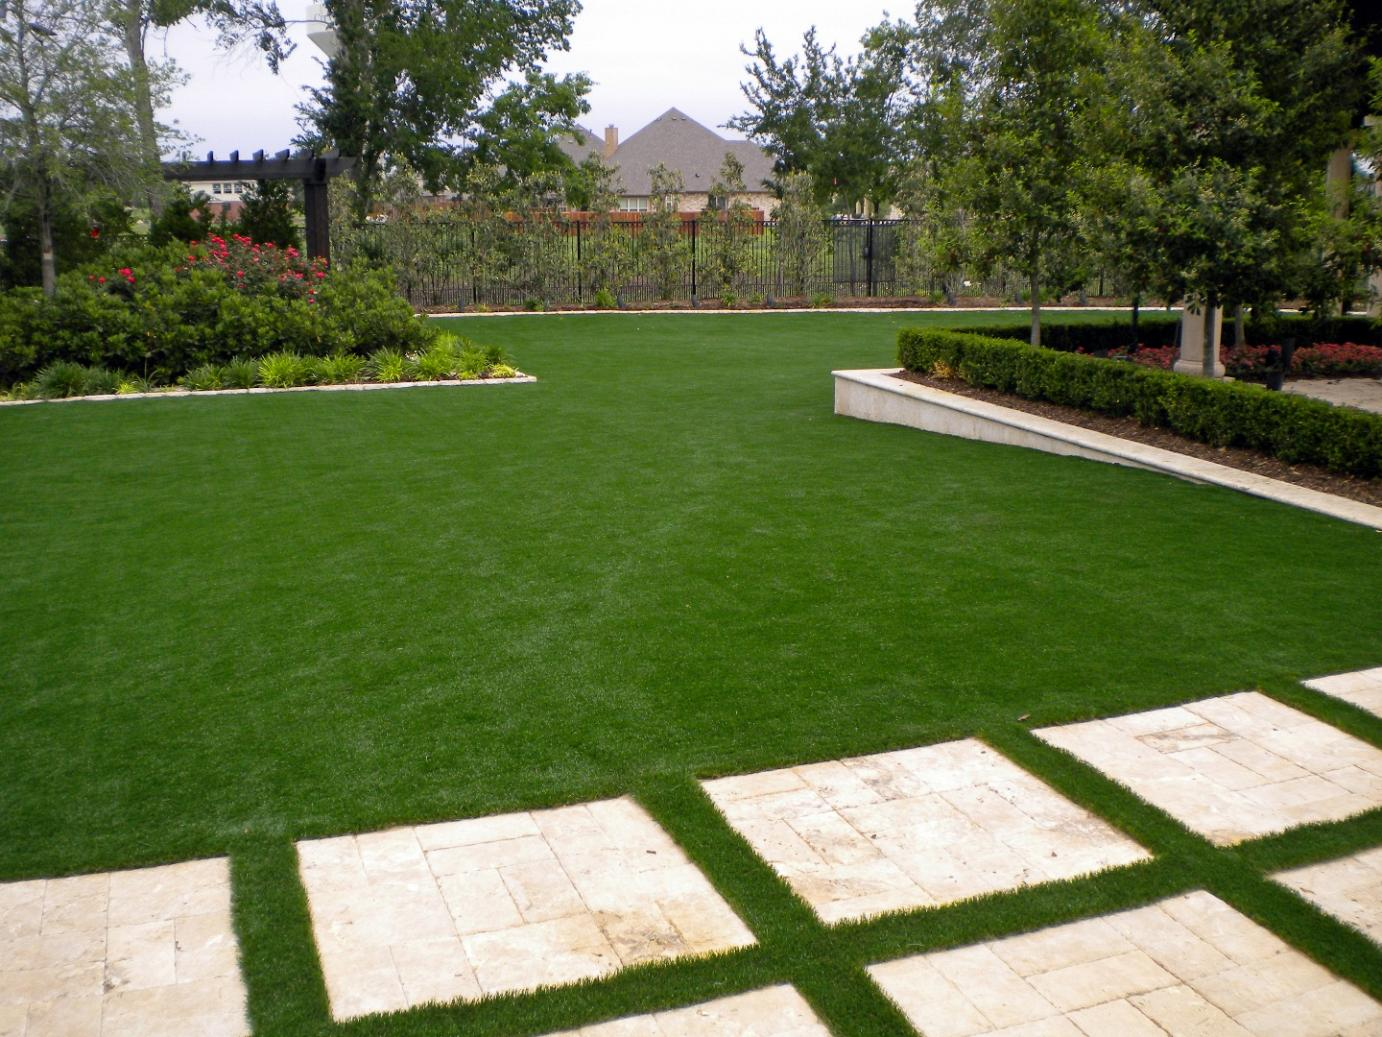 Best Artificial Grass For Backyard : Artificial Grass Installation Camp Pendleton South, California